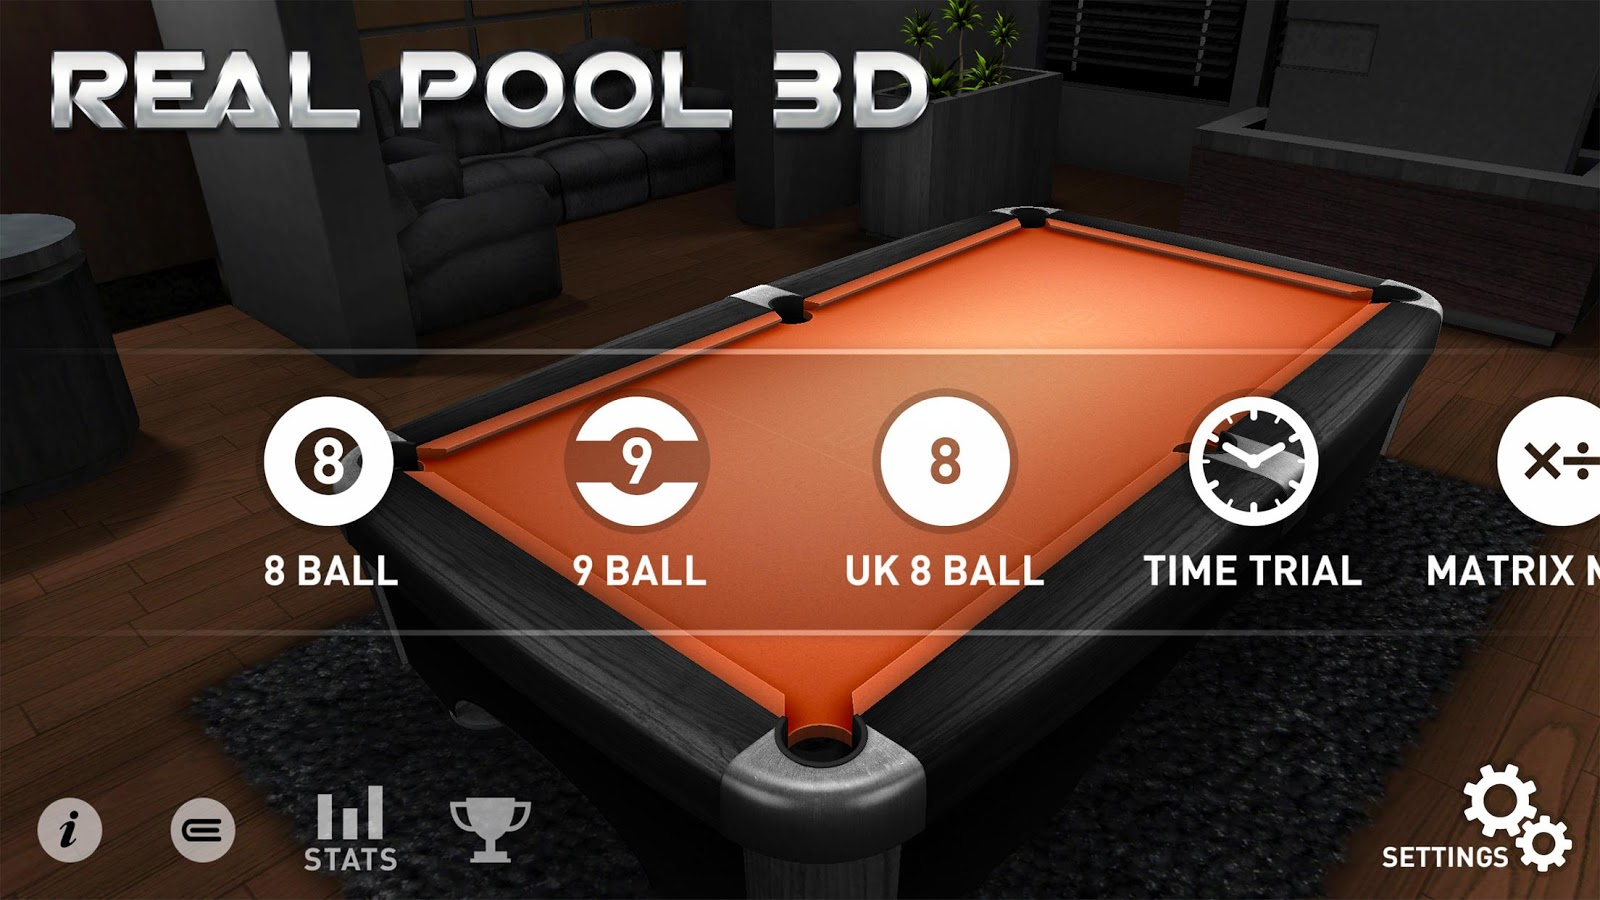 Real Pool 3D Screenshot 7